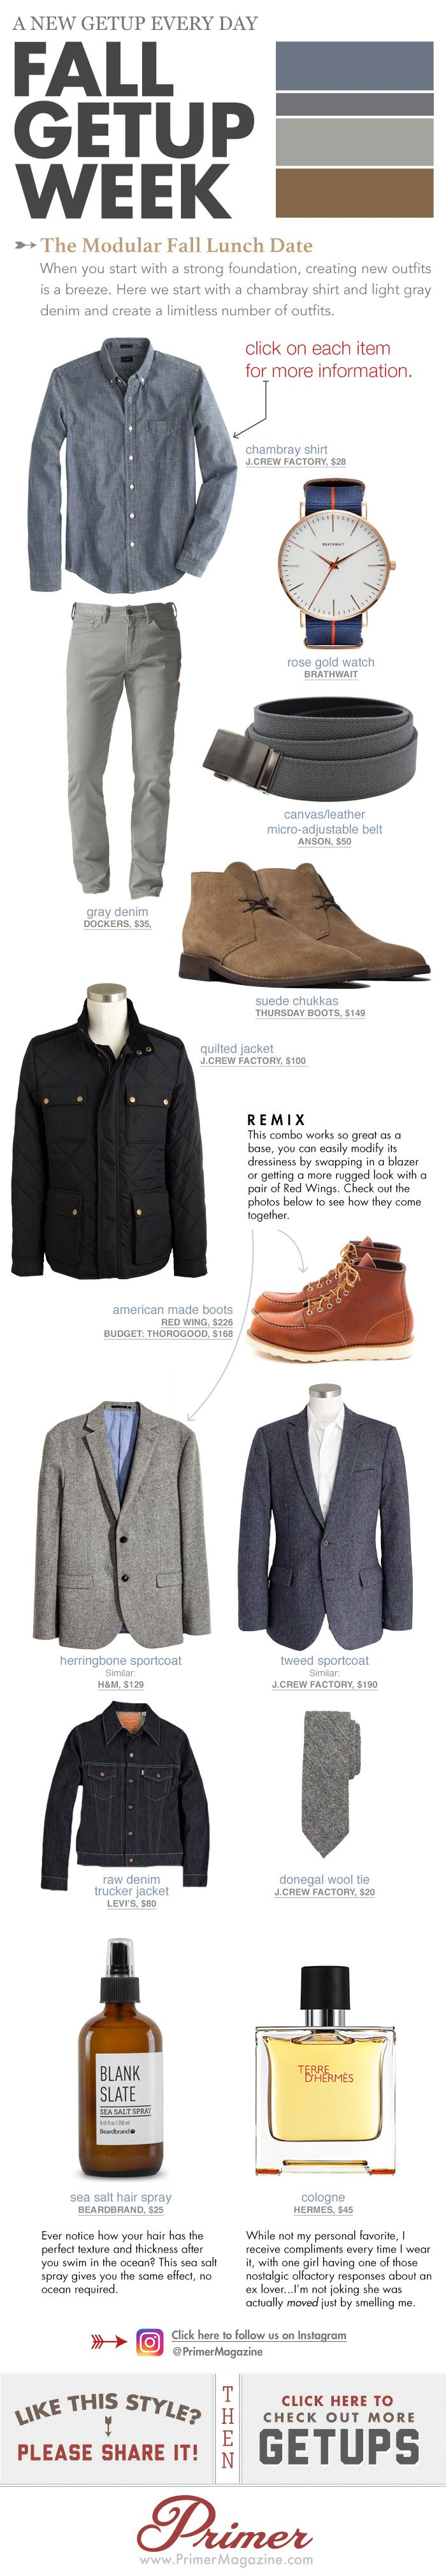 Fall Getup Week: The Modular Fall Lunch Date + 5 Variations! | Primer